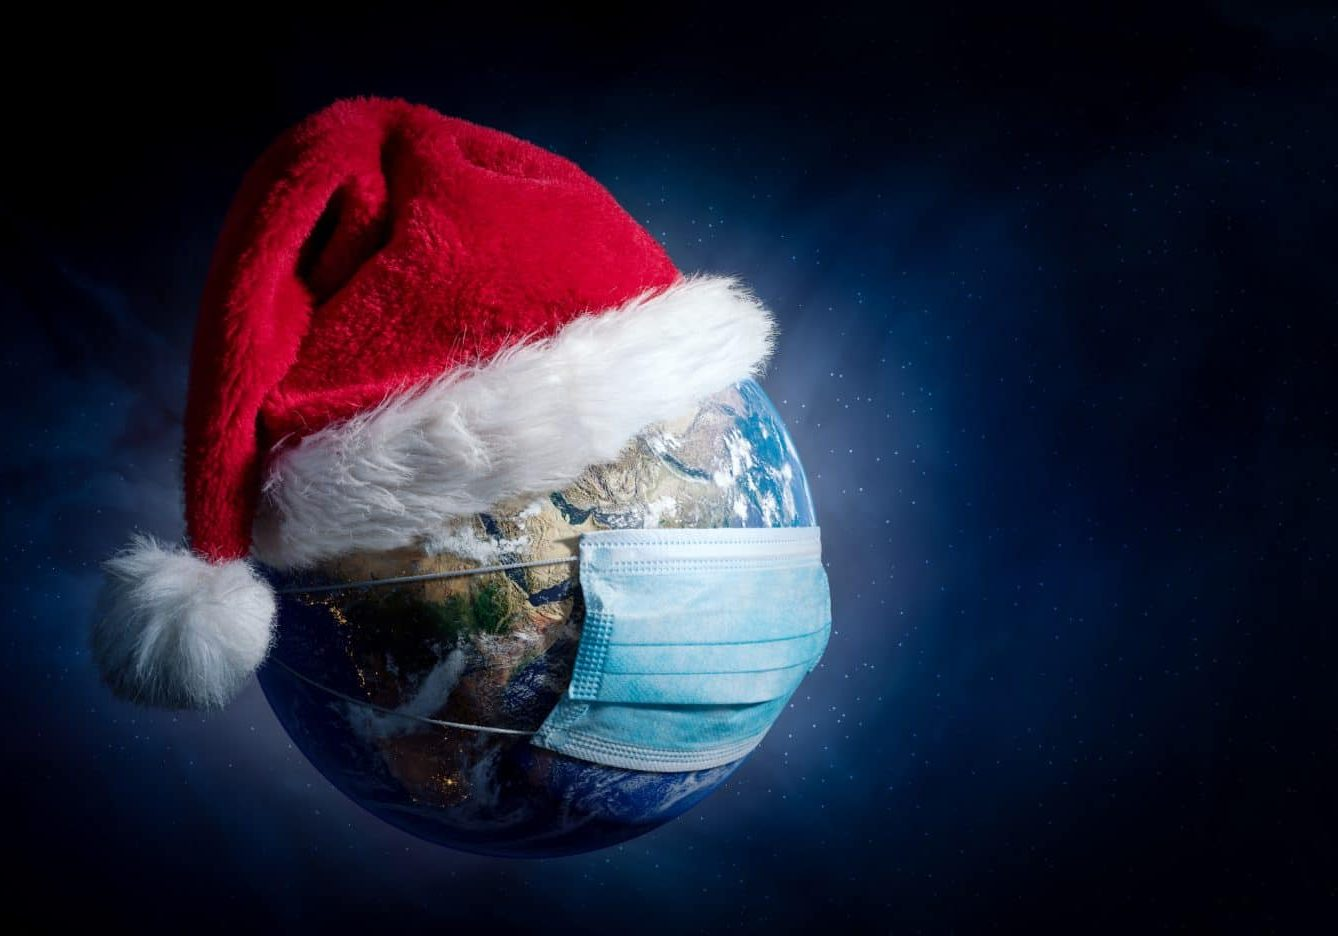 Earth With Surgical Mask and Santa Hat - Virus Infection Covid 19 - World with Coronavirus - Christmas Concept 3D Illustration - Earth map developed from NASA source data on https://visibleearth.nasa.gov/collection/1484/blue-marble